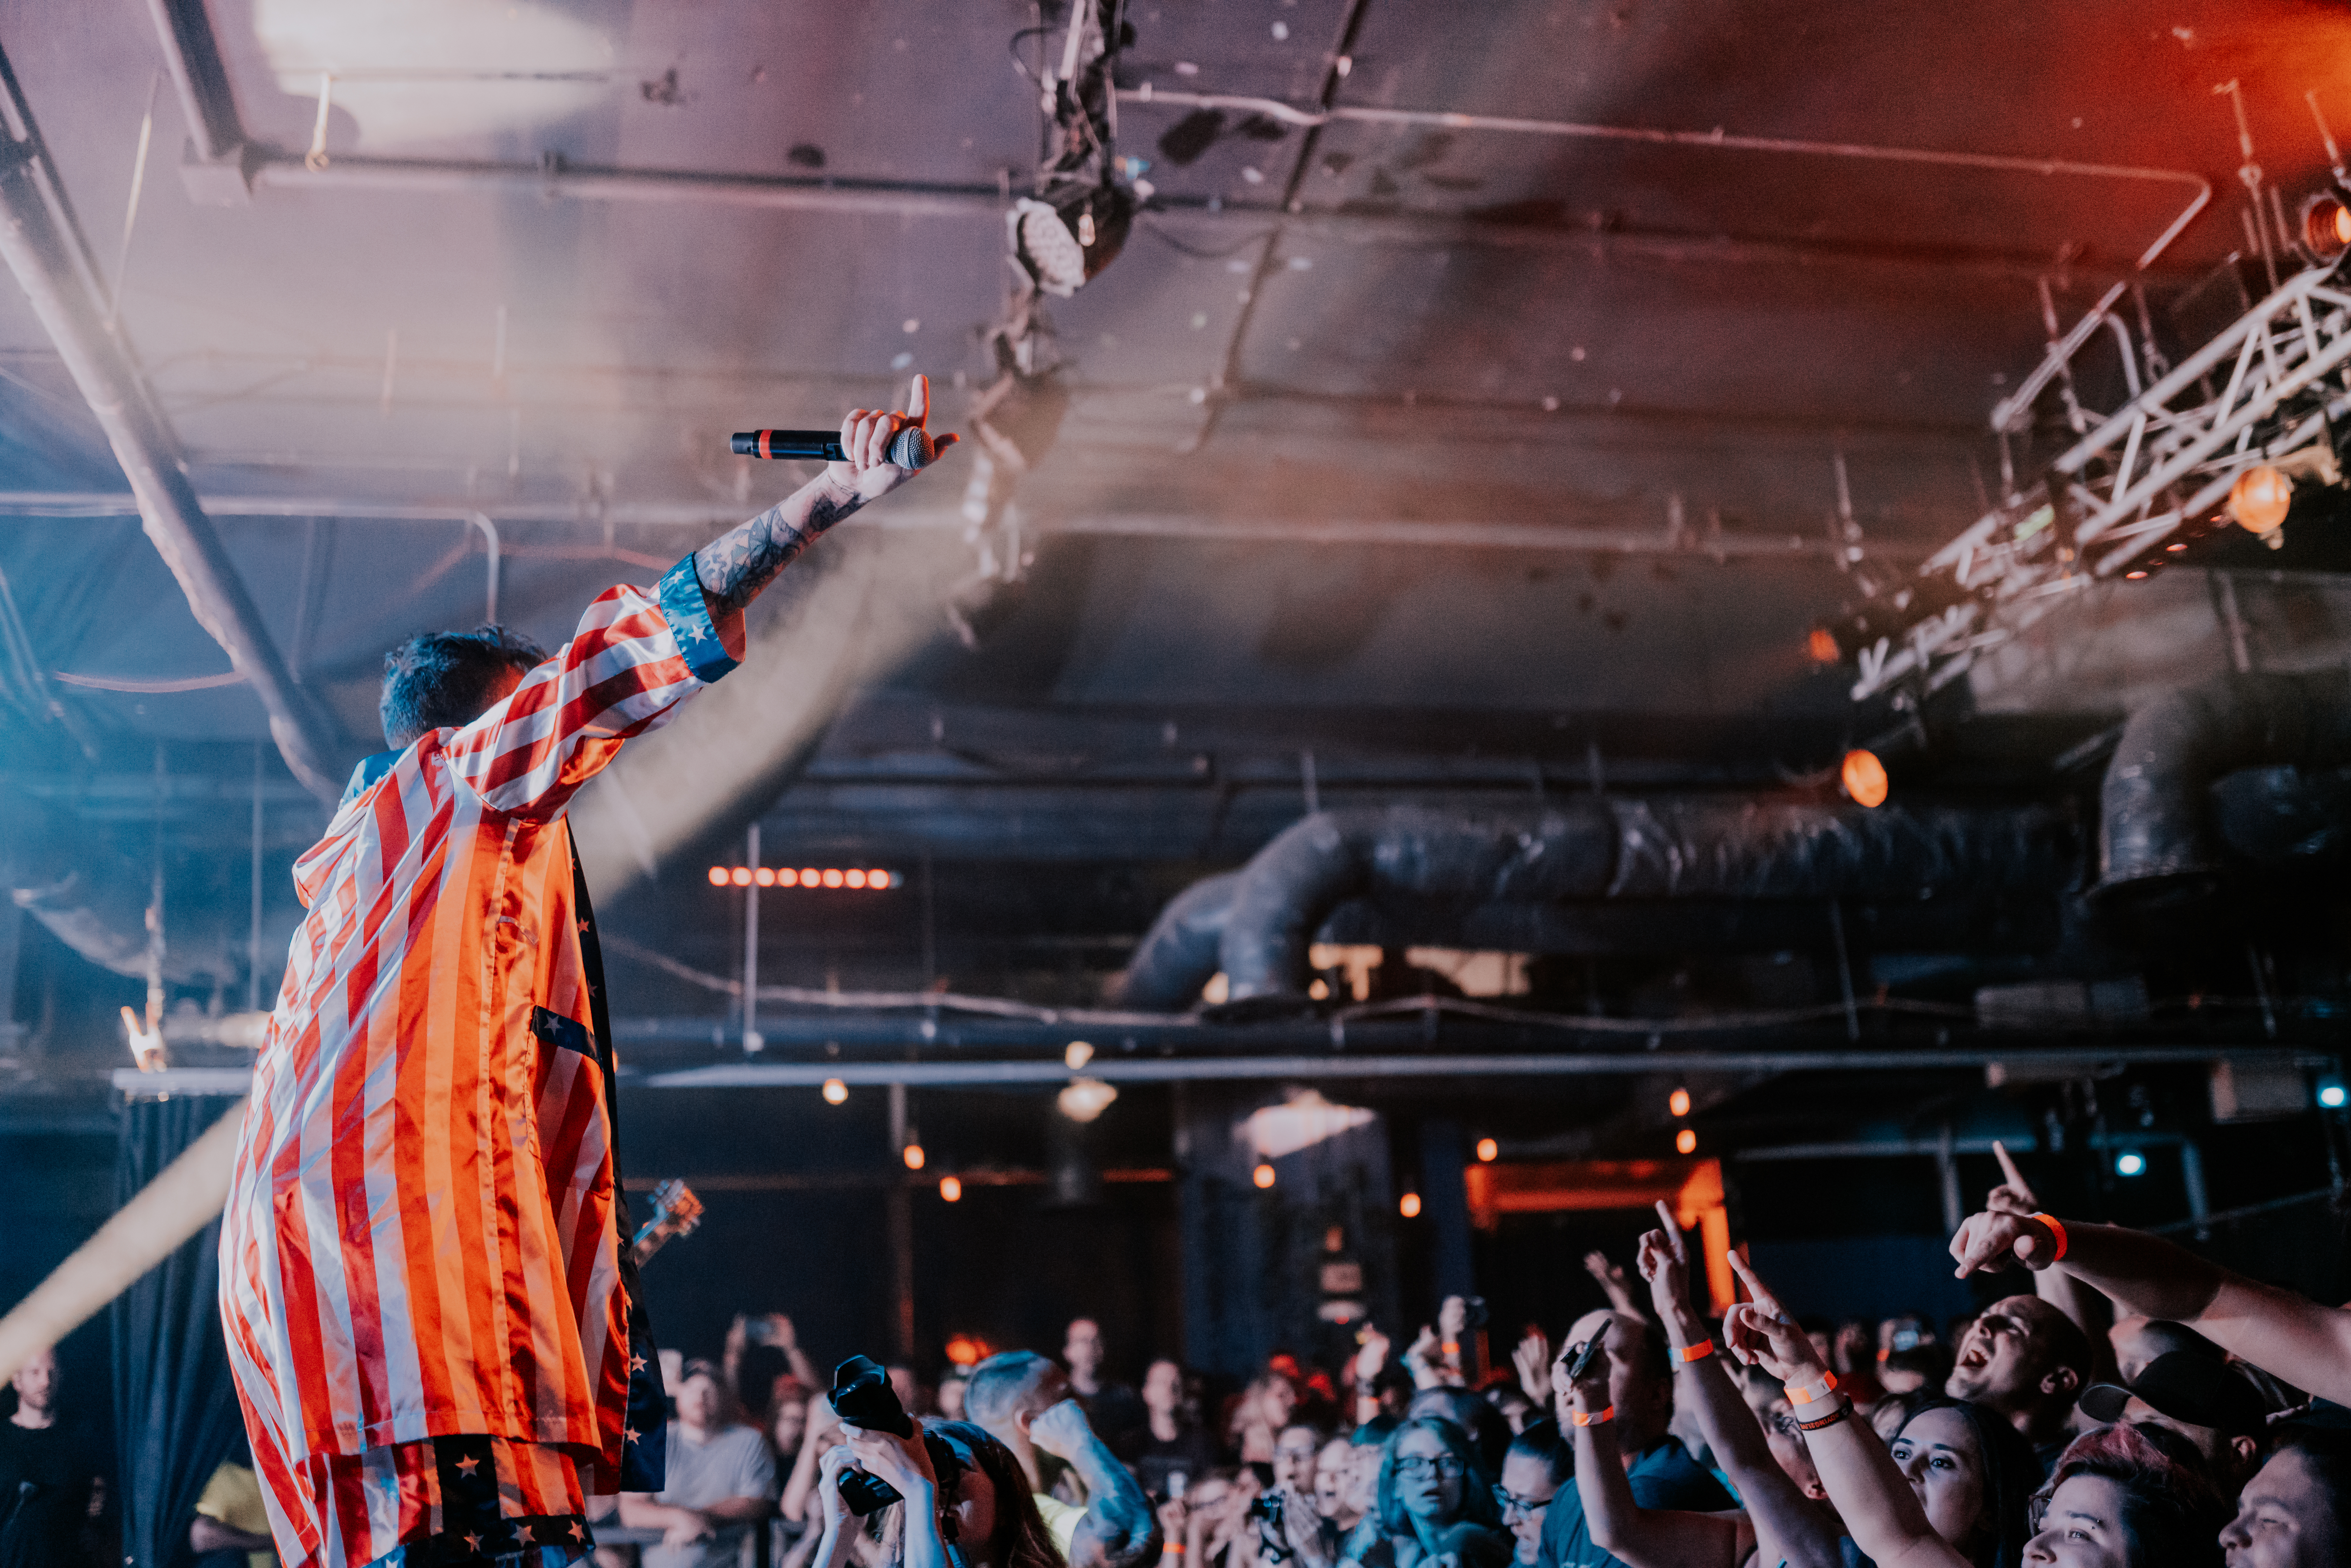 New Found Glory exudes the energy of classic rock concerts